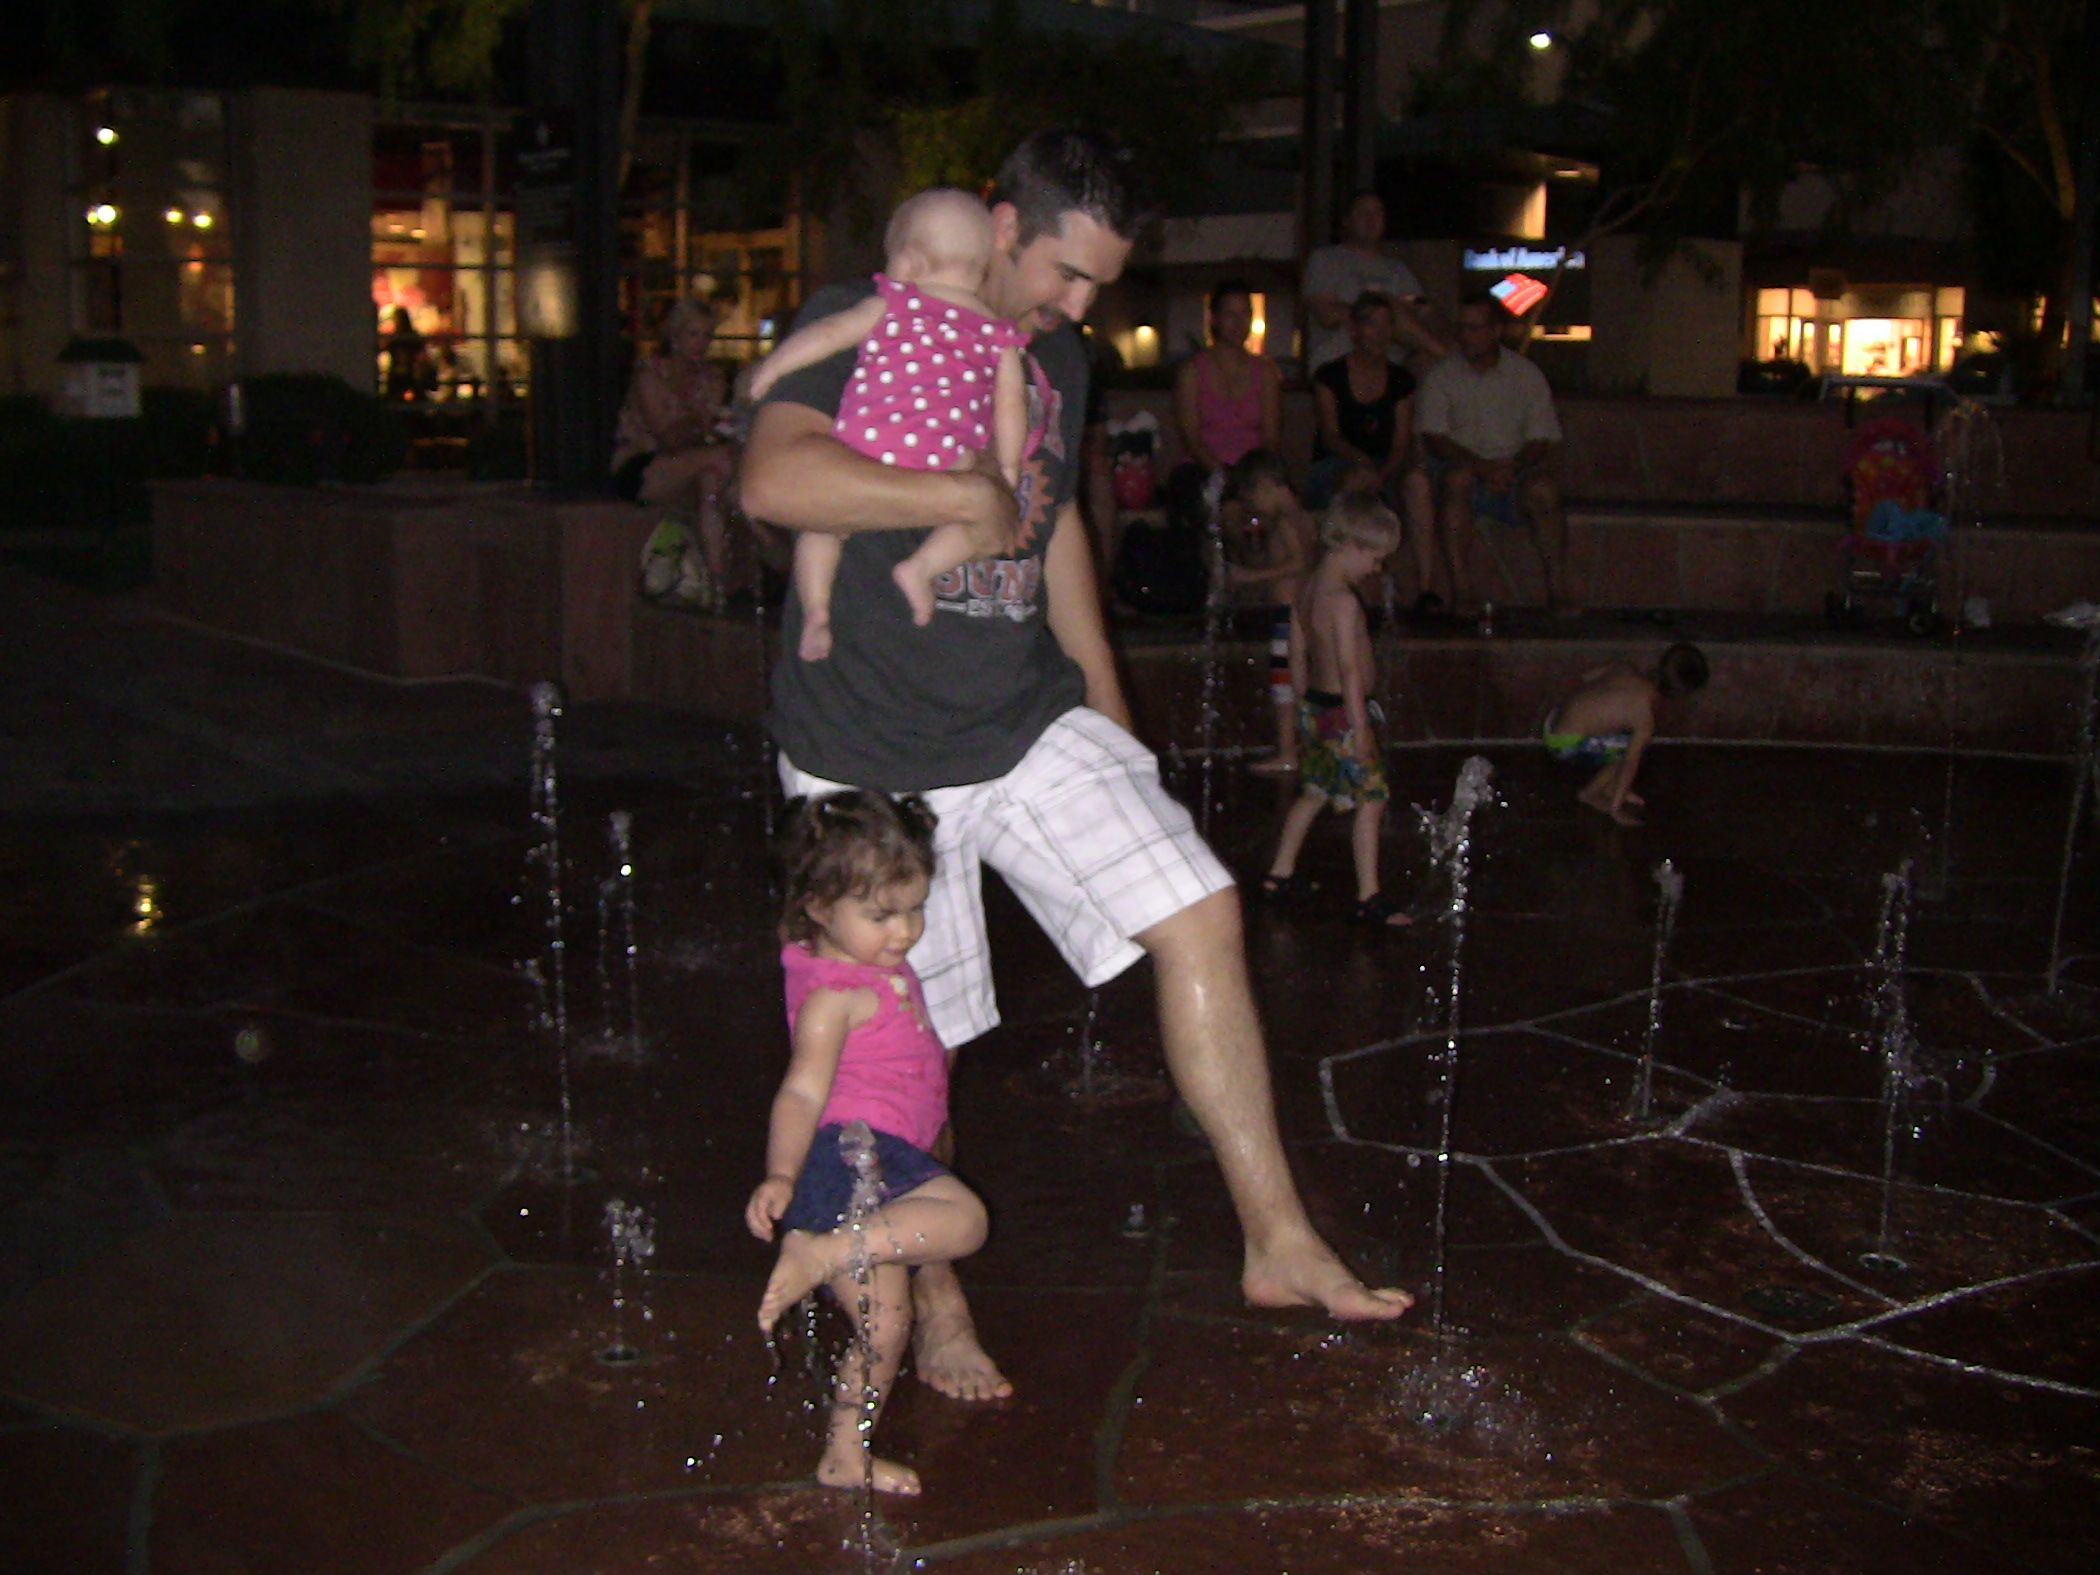 DAD & HIS GIRLS PLAYING IN THE FOUNTAINS